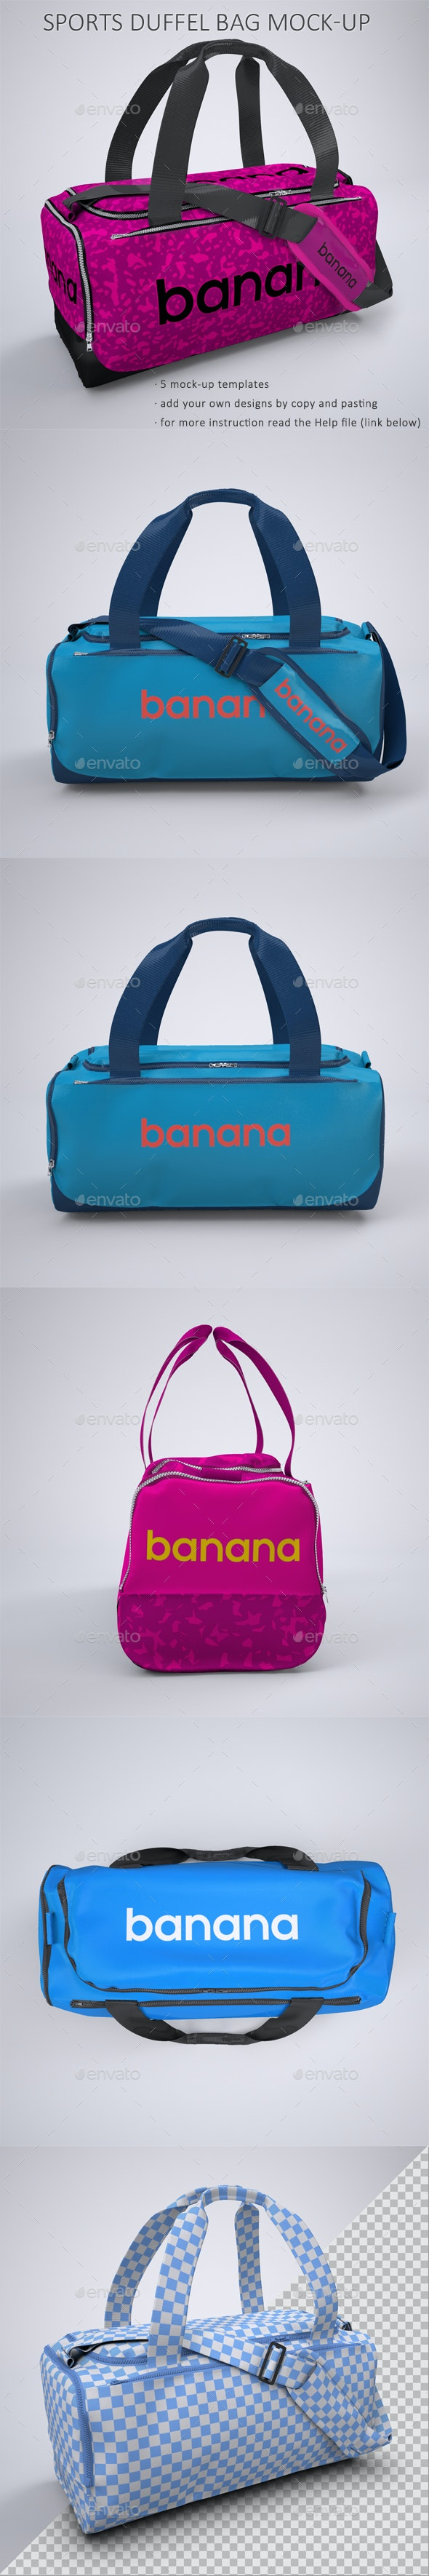 Sports Bag or Gym Duffel Bag Mock-Up - Product Mock-Ups Graphics